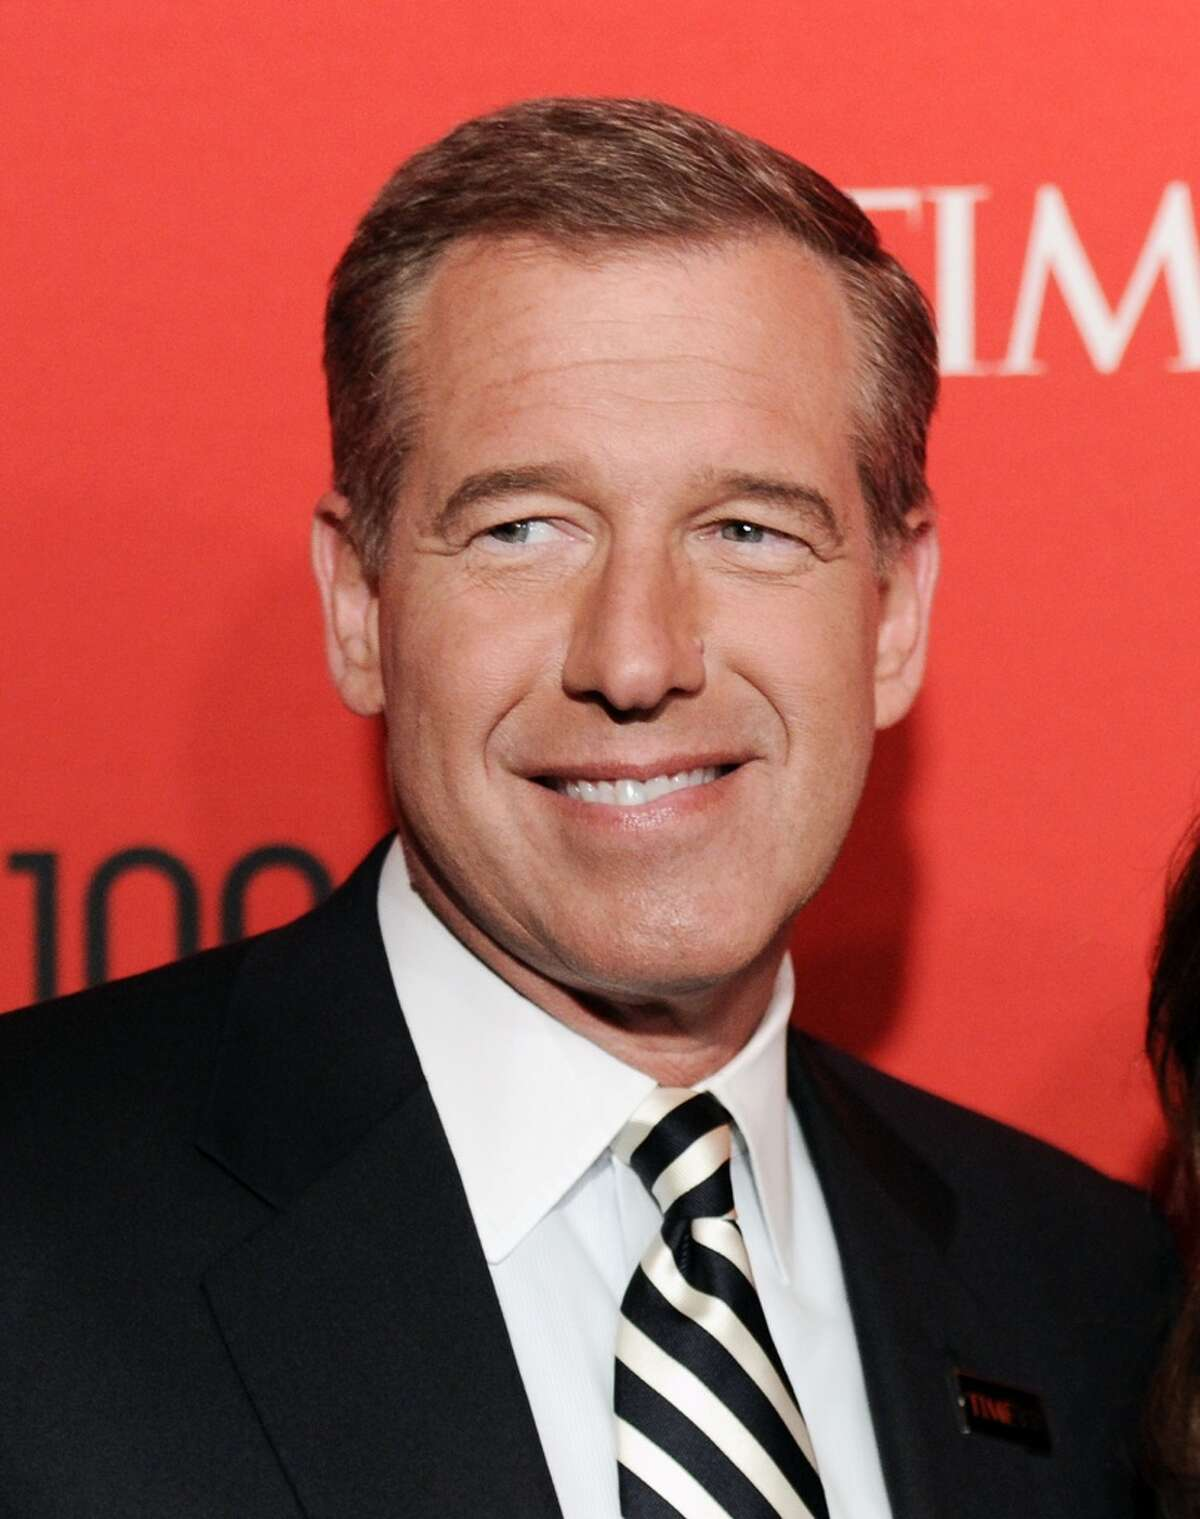 FILE - In this April 24, 2012 file photo, NBC News anchor Brian Williams attends the TIME 100 gala. (AP Photo/Evan Agostini, File)